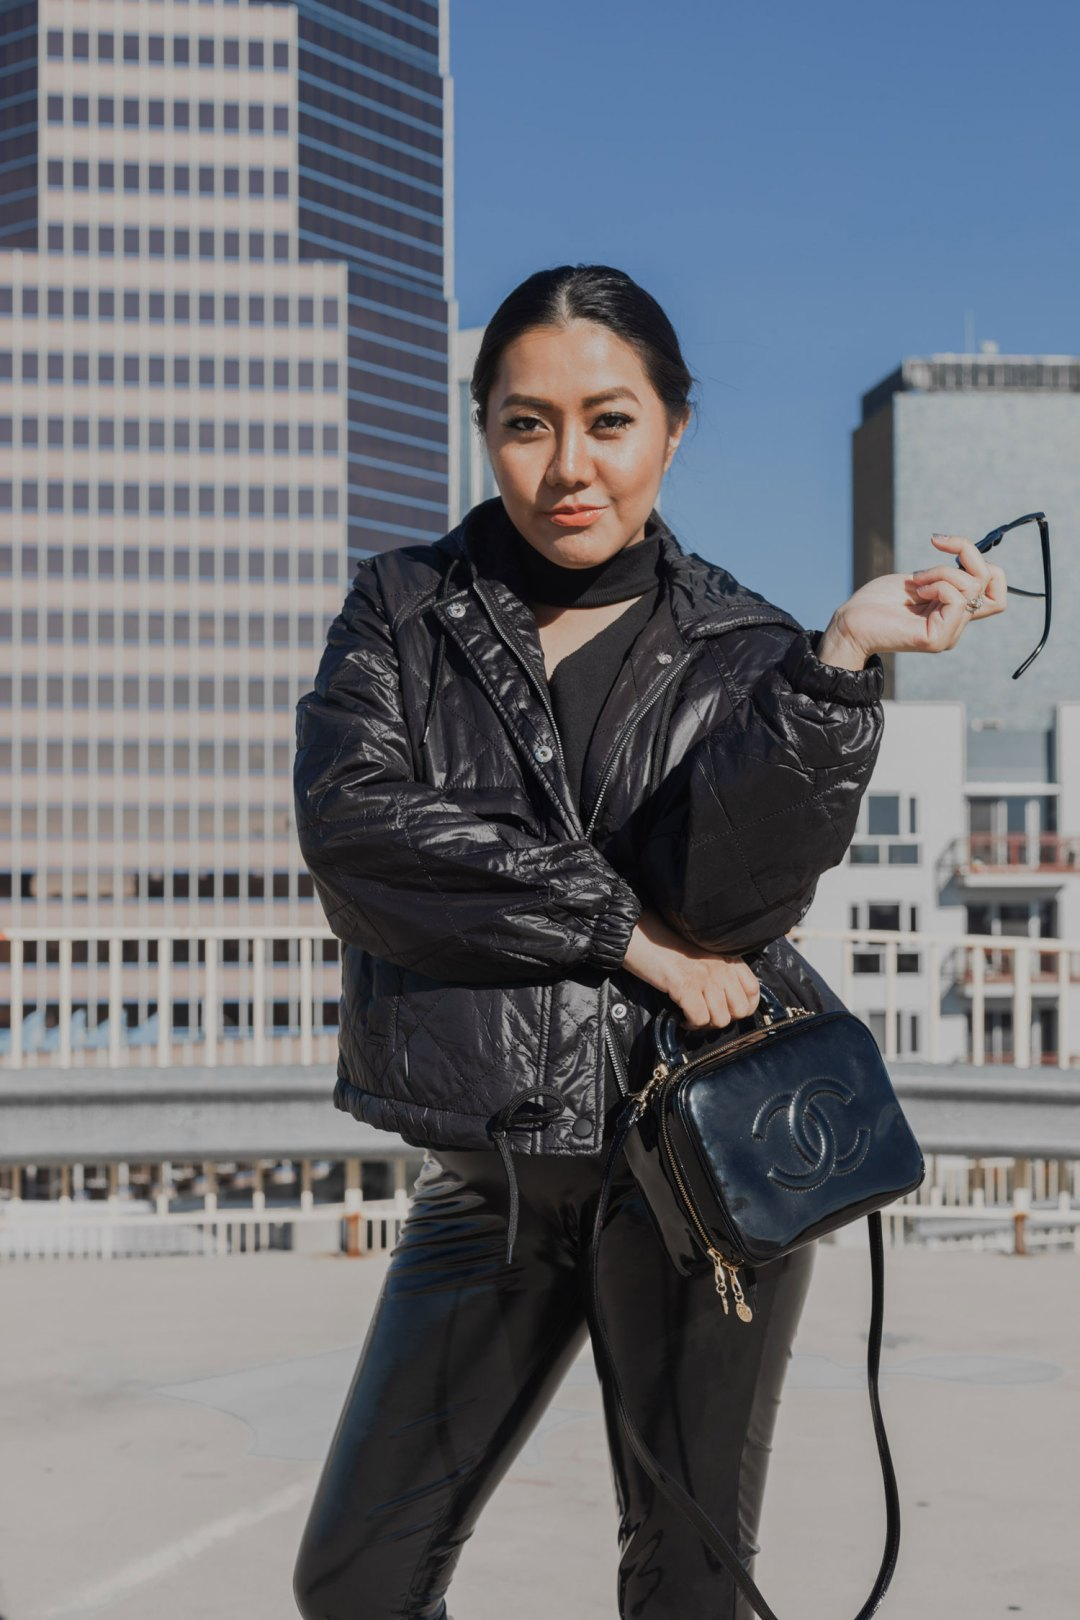 Fall/ Winter Outfit Idea | Vinyl Leggings and Quilted Jacket | Black on Black #GoodVibesGifting Day 4